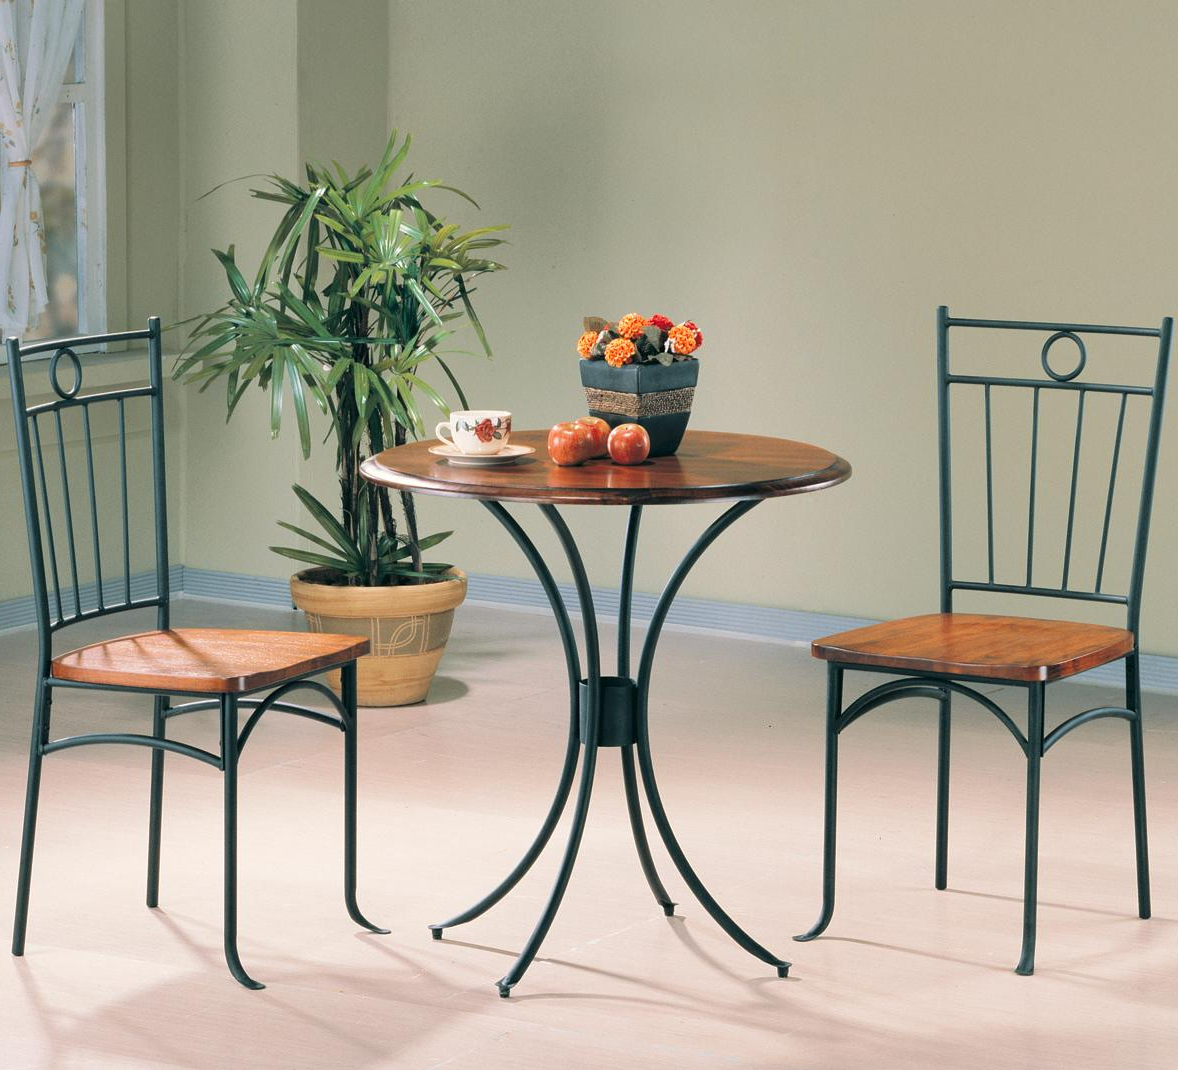 Most Recently Released 3 Piece Dining Sets Inside Tamiami 3 Piece Bistro Dining Setcoaster At Value City Furniture (View 15 of 20)